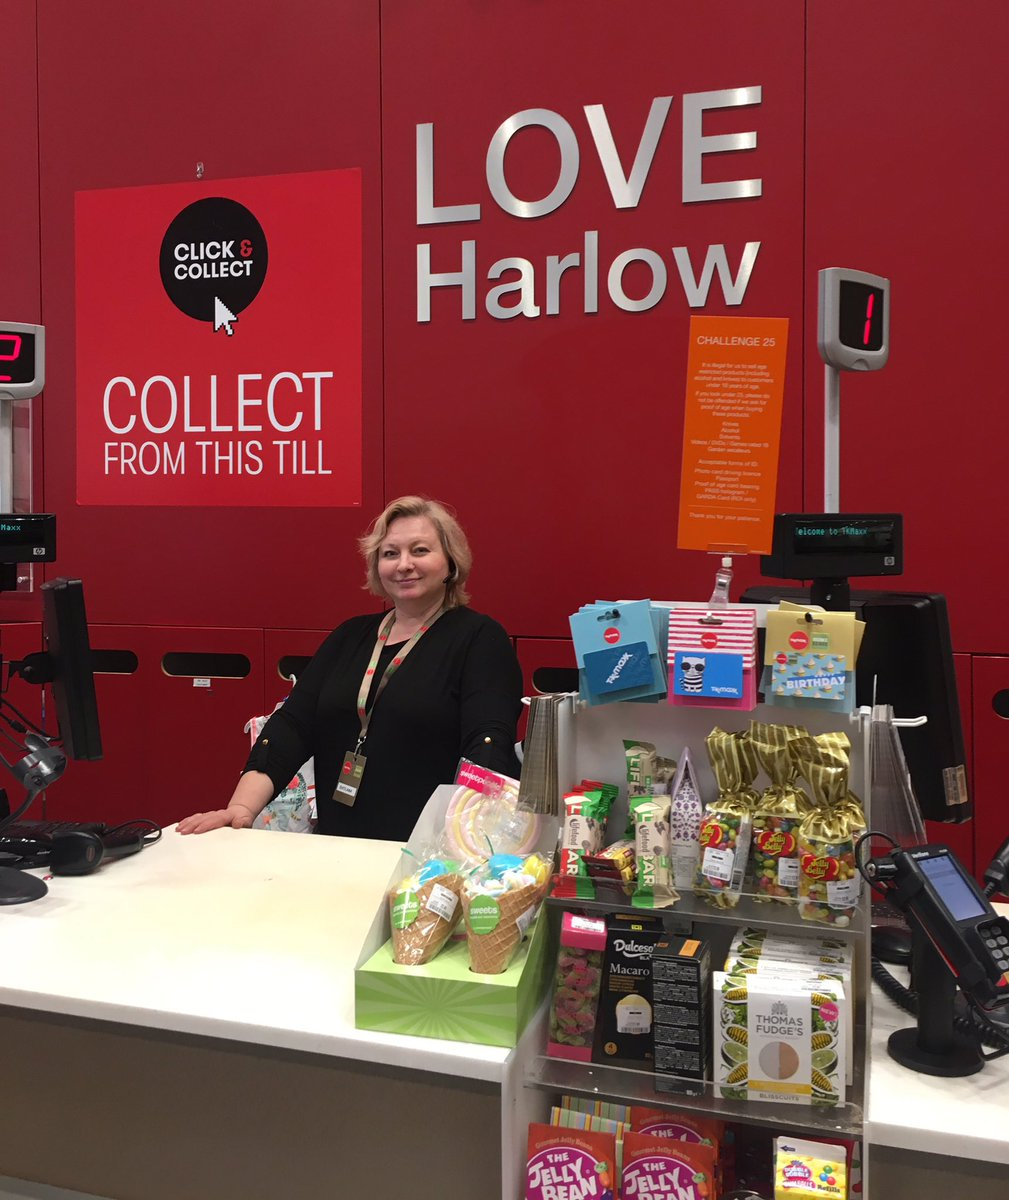 🎤Looking forward to hearing @GoWaterGardens speak at our Harlow Ambassador event on the 23 May. Harlow has a great selection of shops which attract visitors from miles around, that's why like @TKMaxx_UK below they #loveharlow ❤️ And we love having you here guys 🛍👍